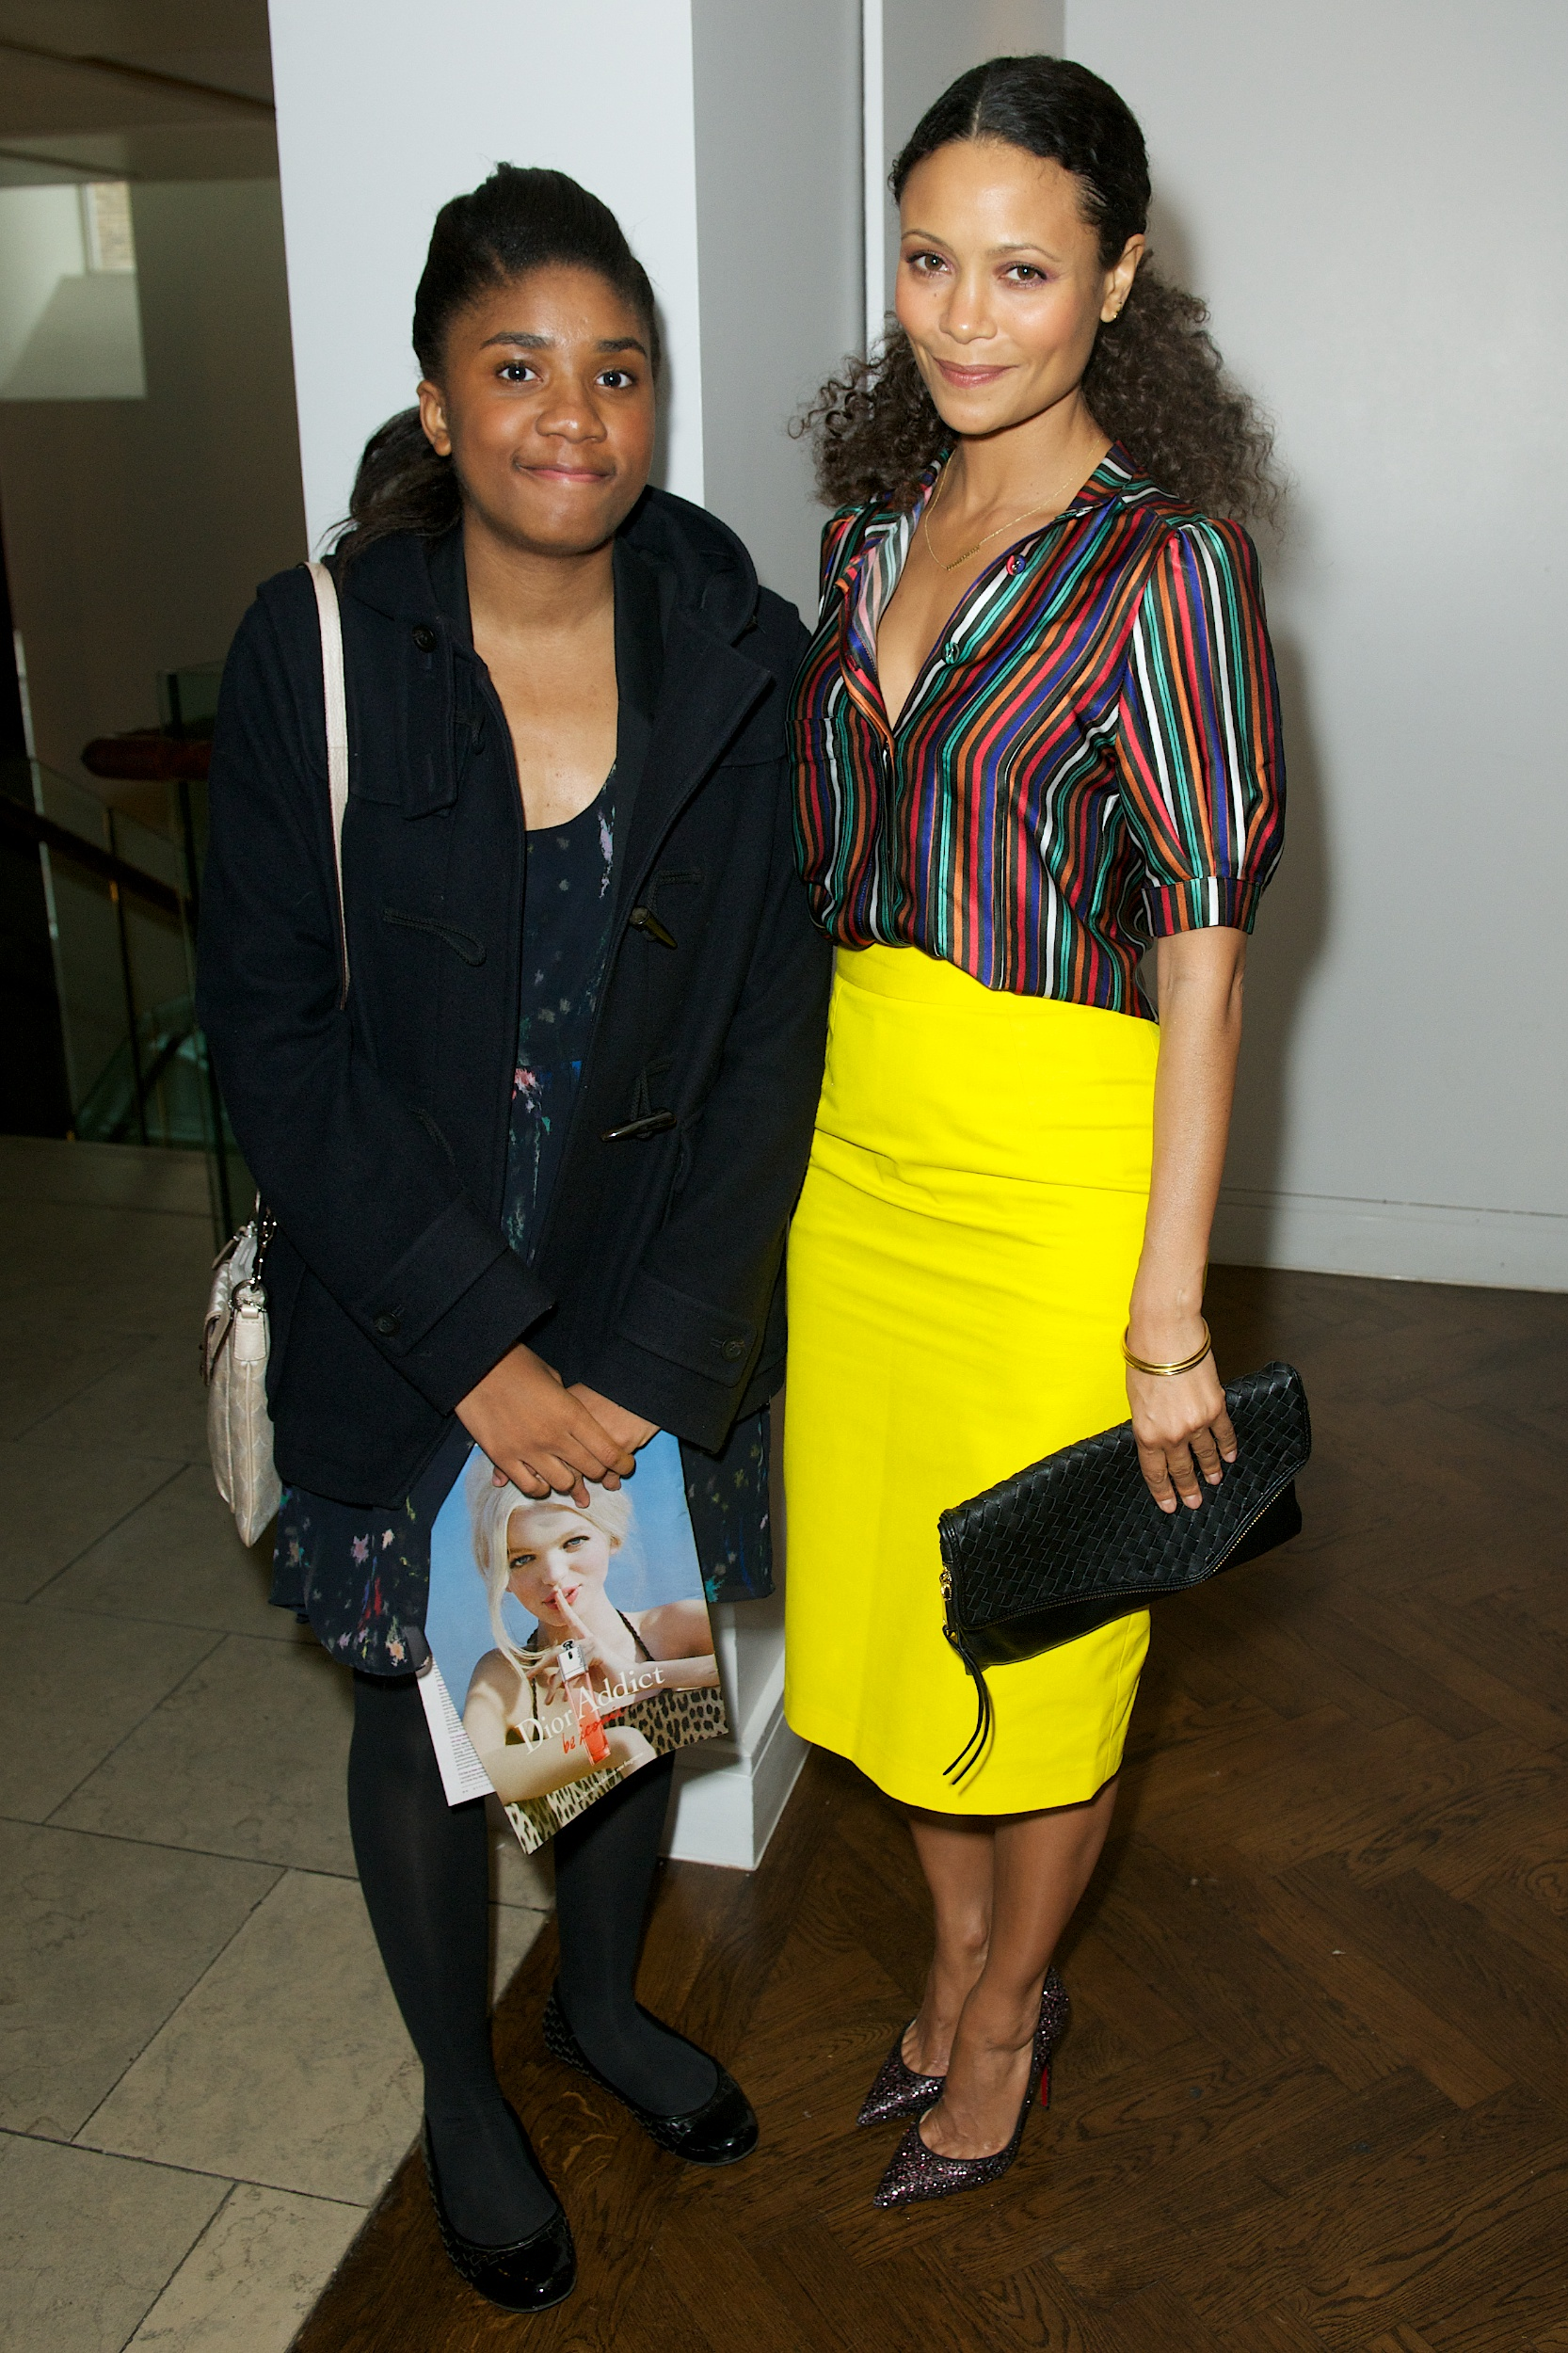 Iolanda Neto with Mentor Thandie Newton at The Hospital Club in Covent Garden on Tuesday'